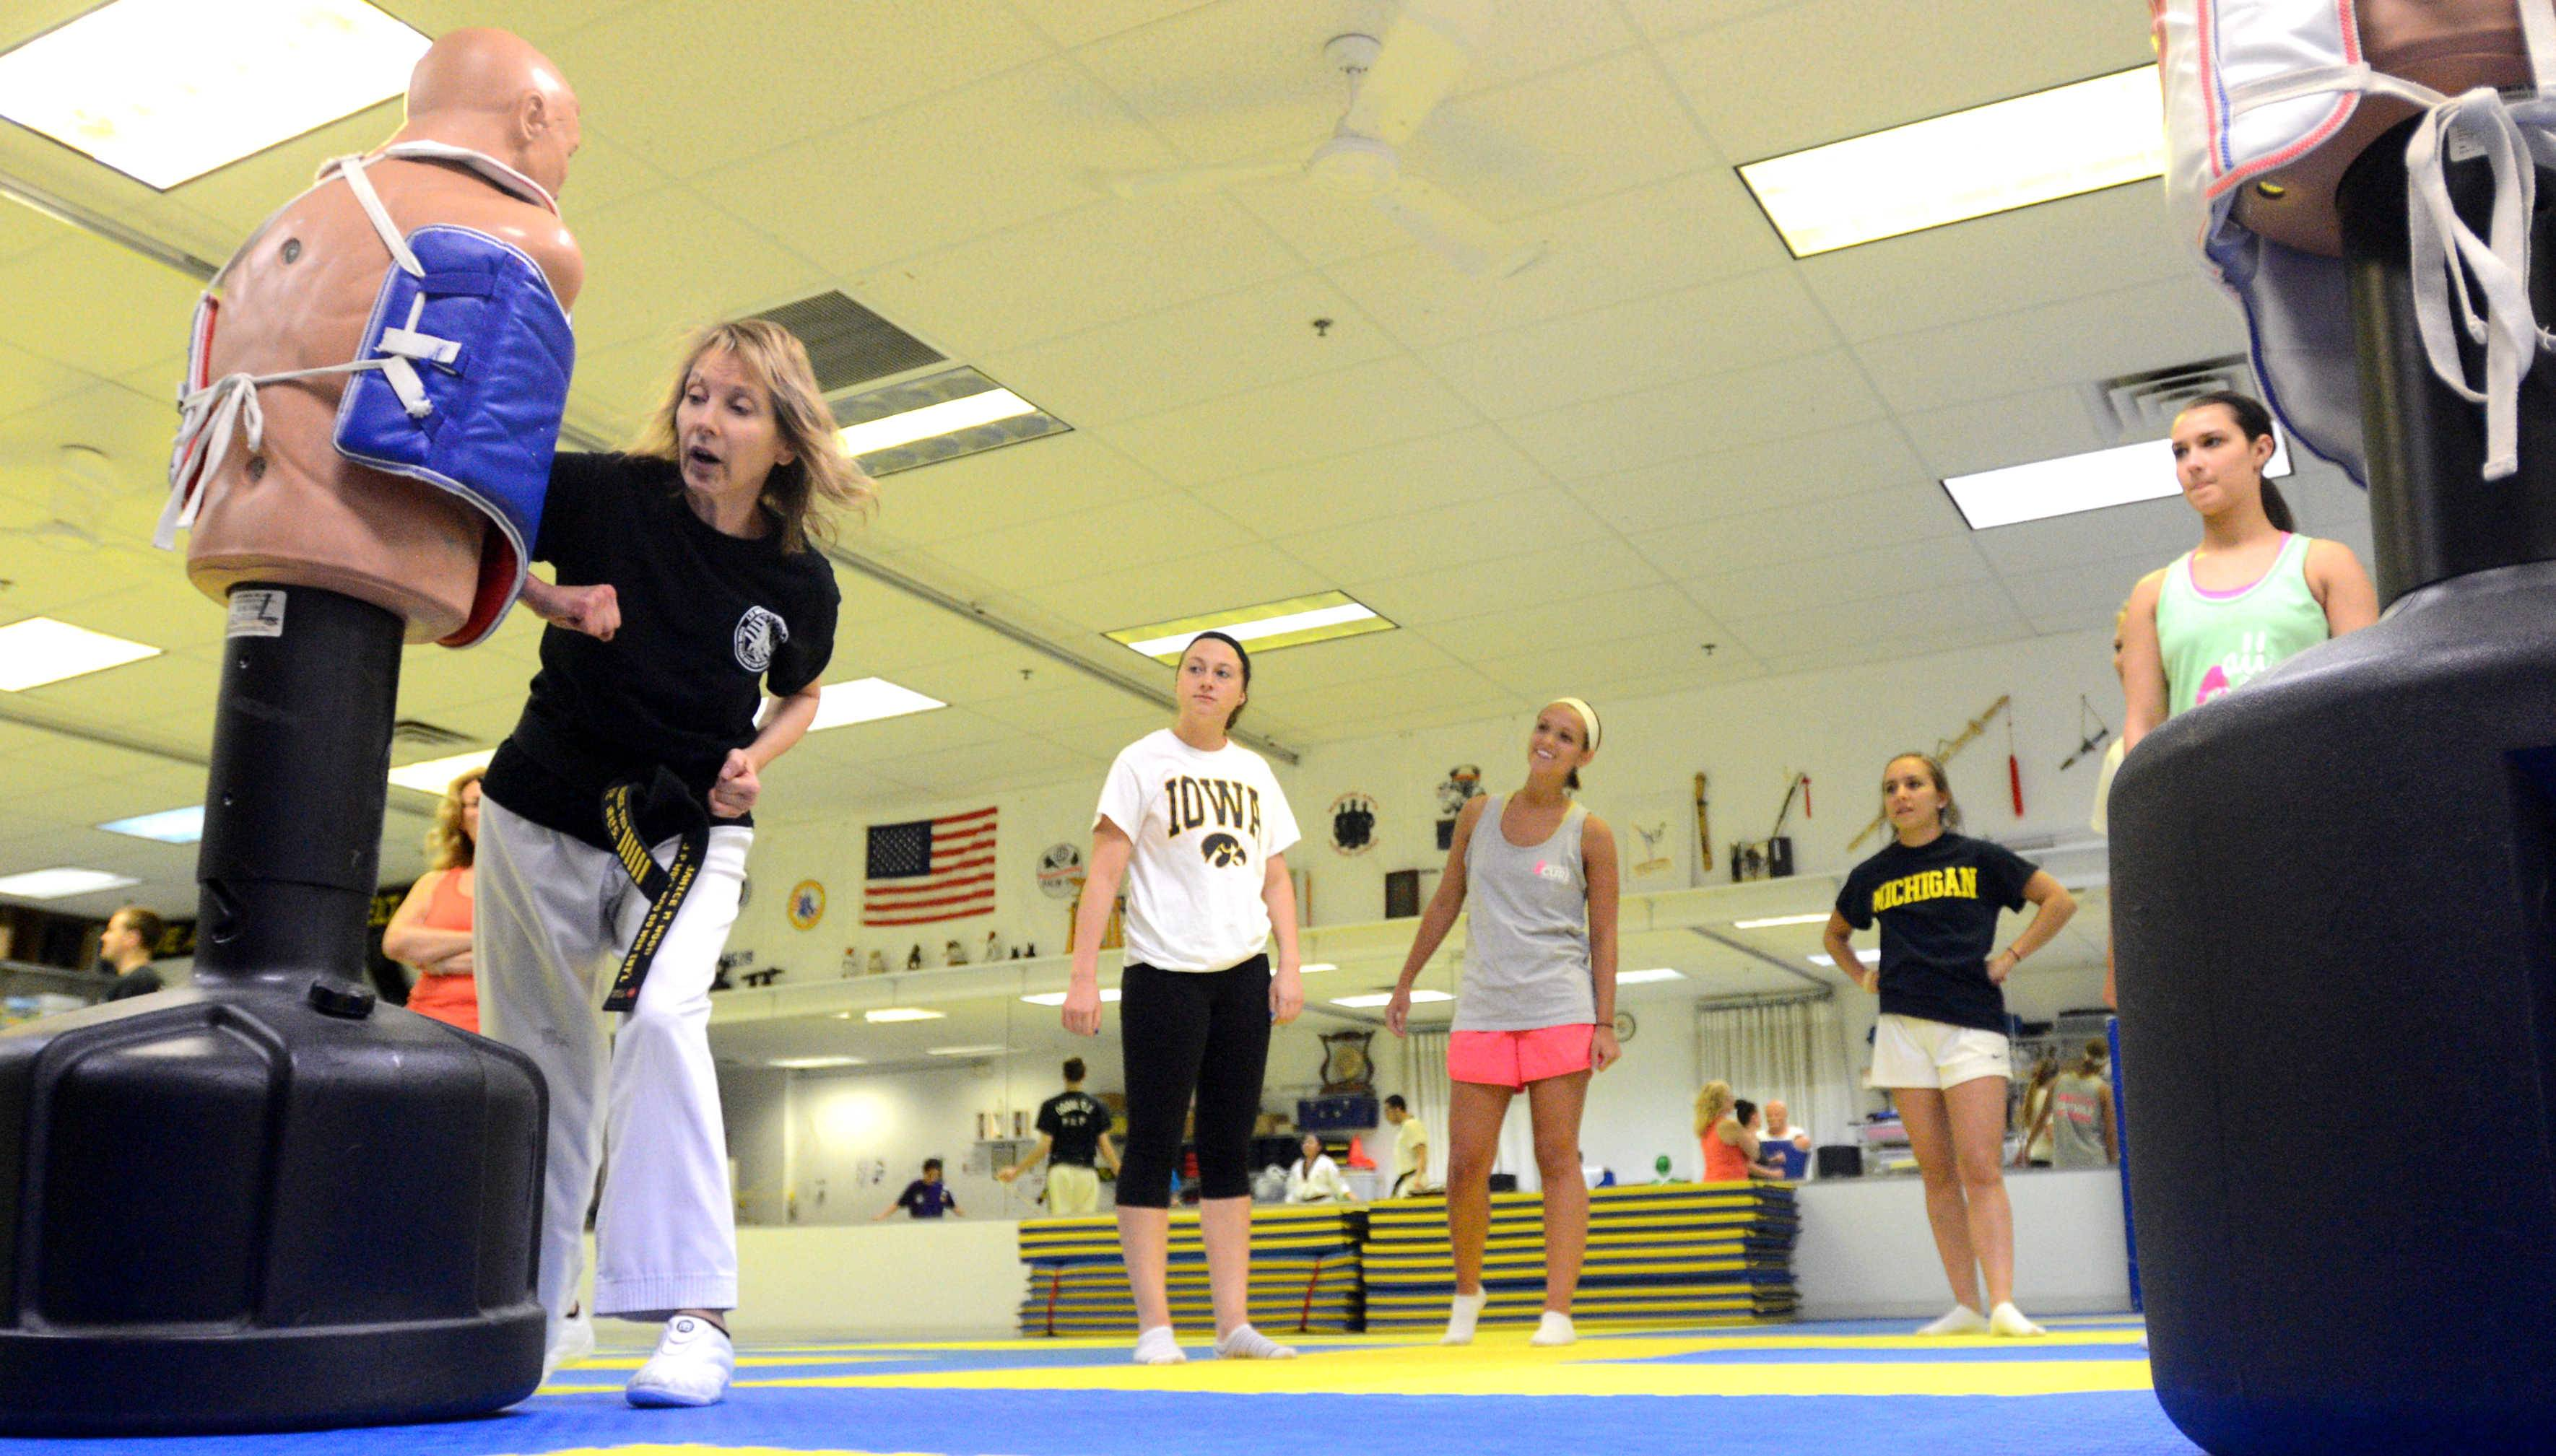 Instructor Jan Wood leads lessons in blocking aggression during a women's self-defense class at J.P. Wood Martial Arts America in Palatine.